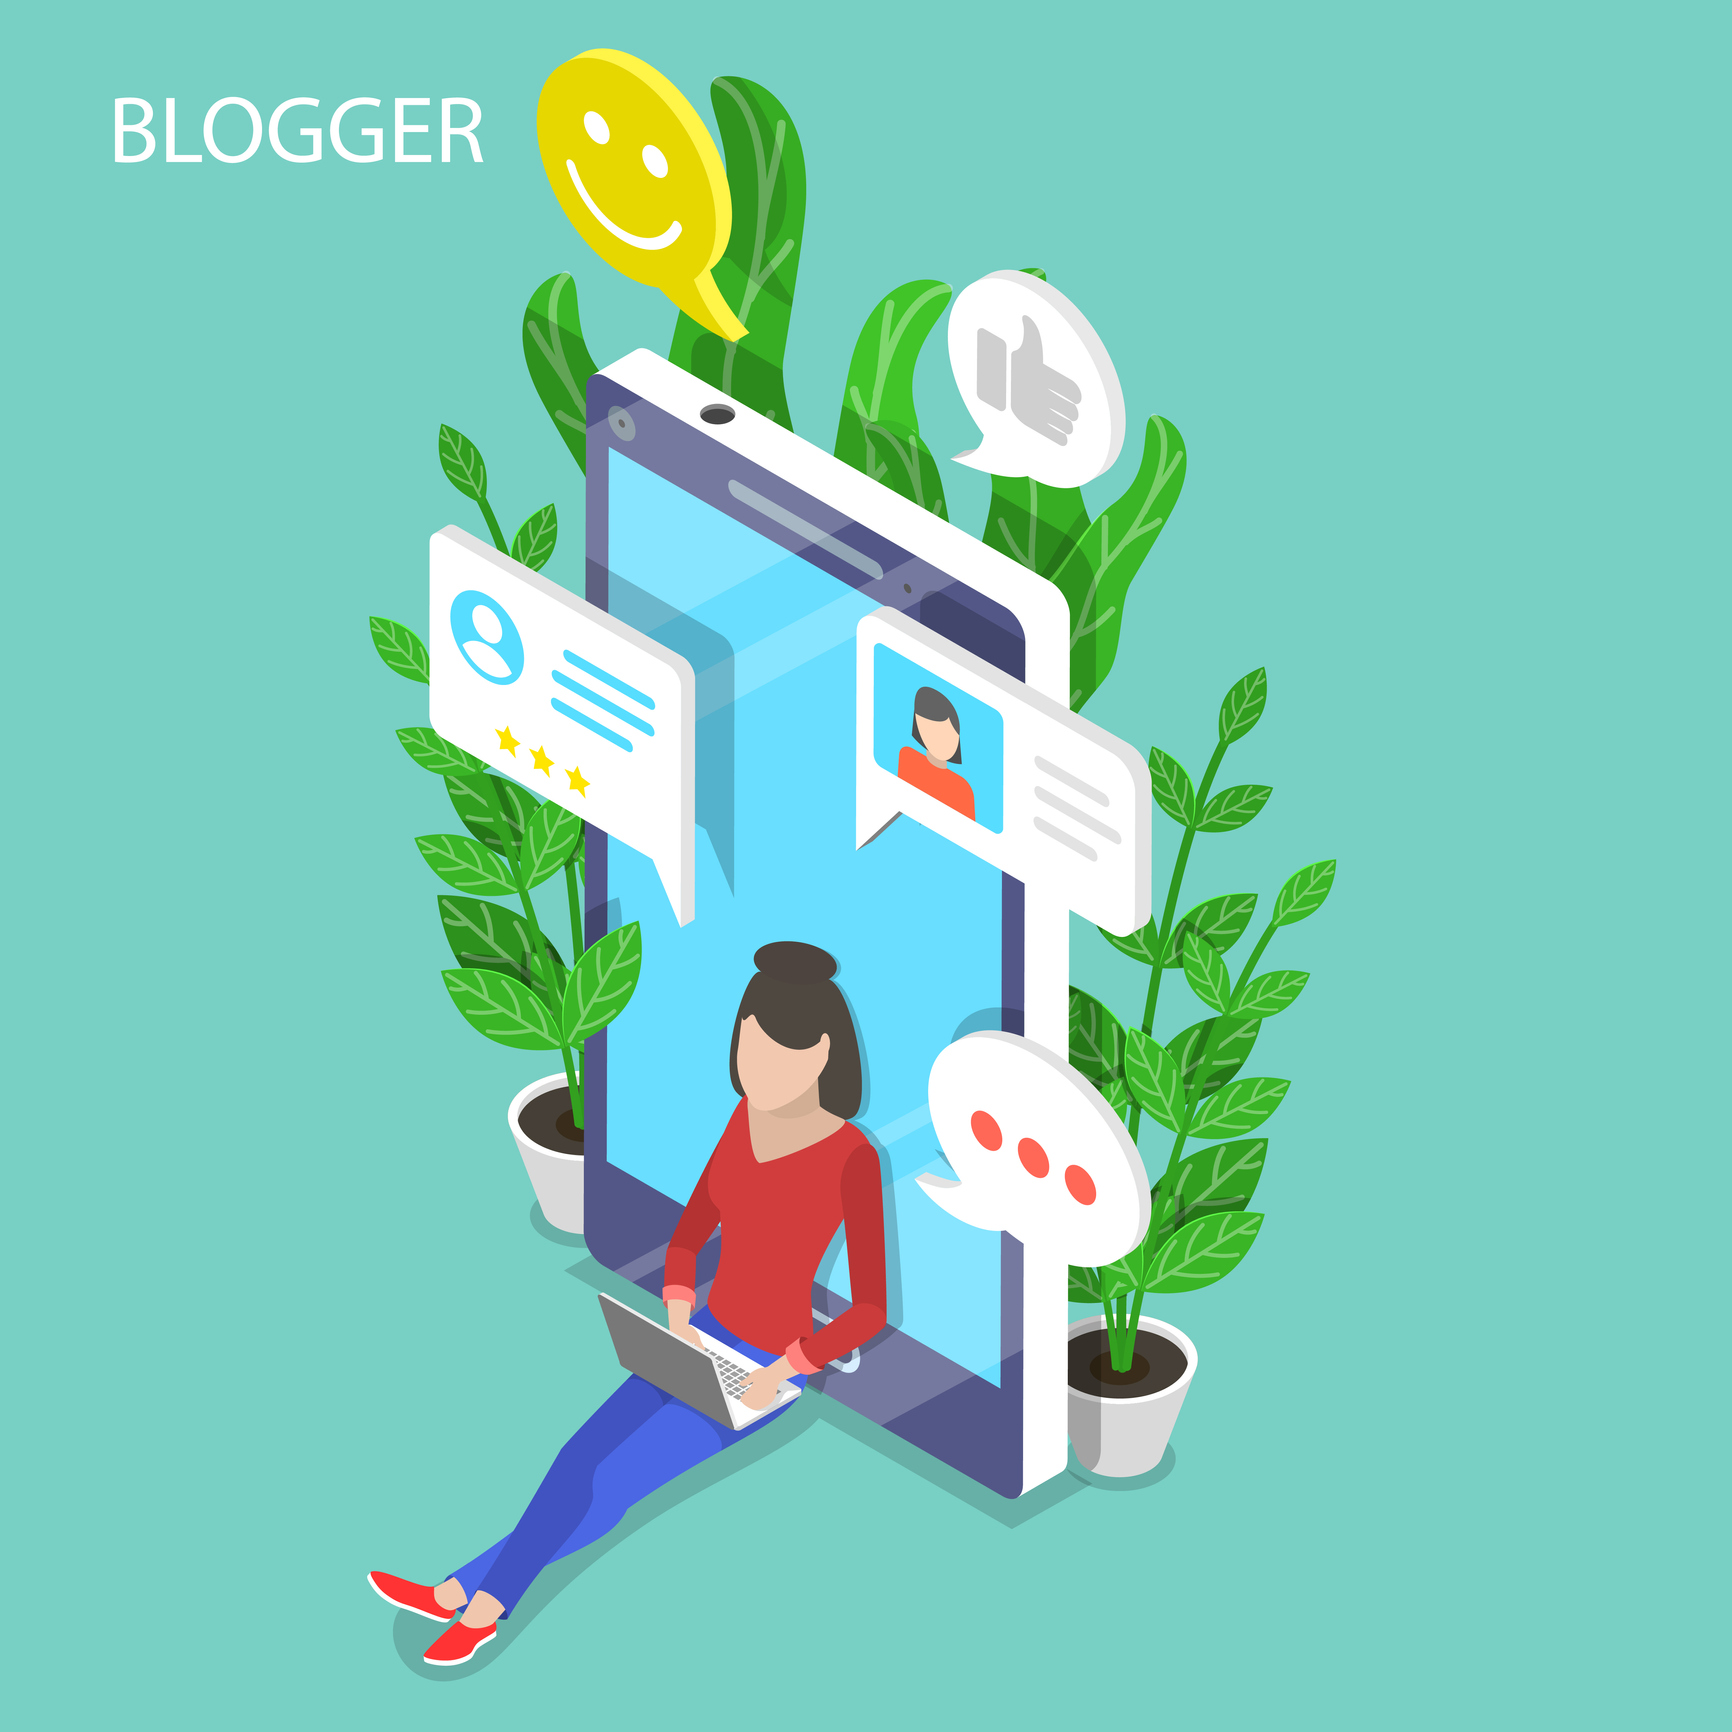 Isometric-flat-vector-concept-of-blogger,-commercial-blog-posting,-copywriting,-content-marketing-strategy.-1045287696_1735x1735-1